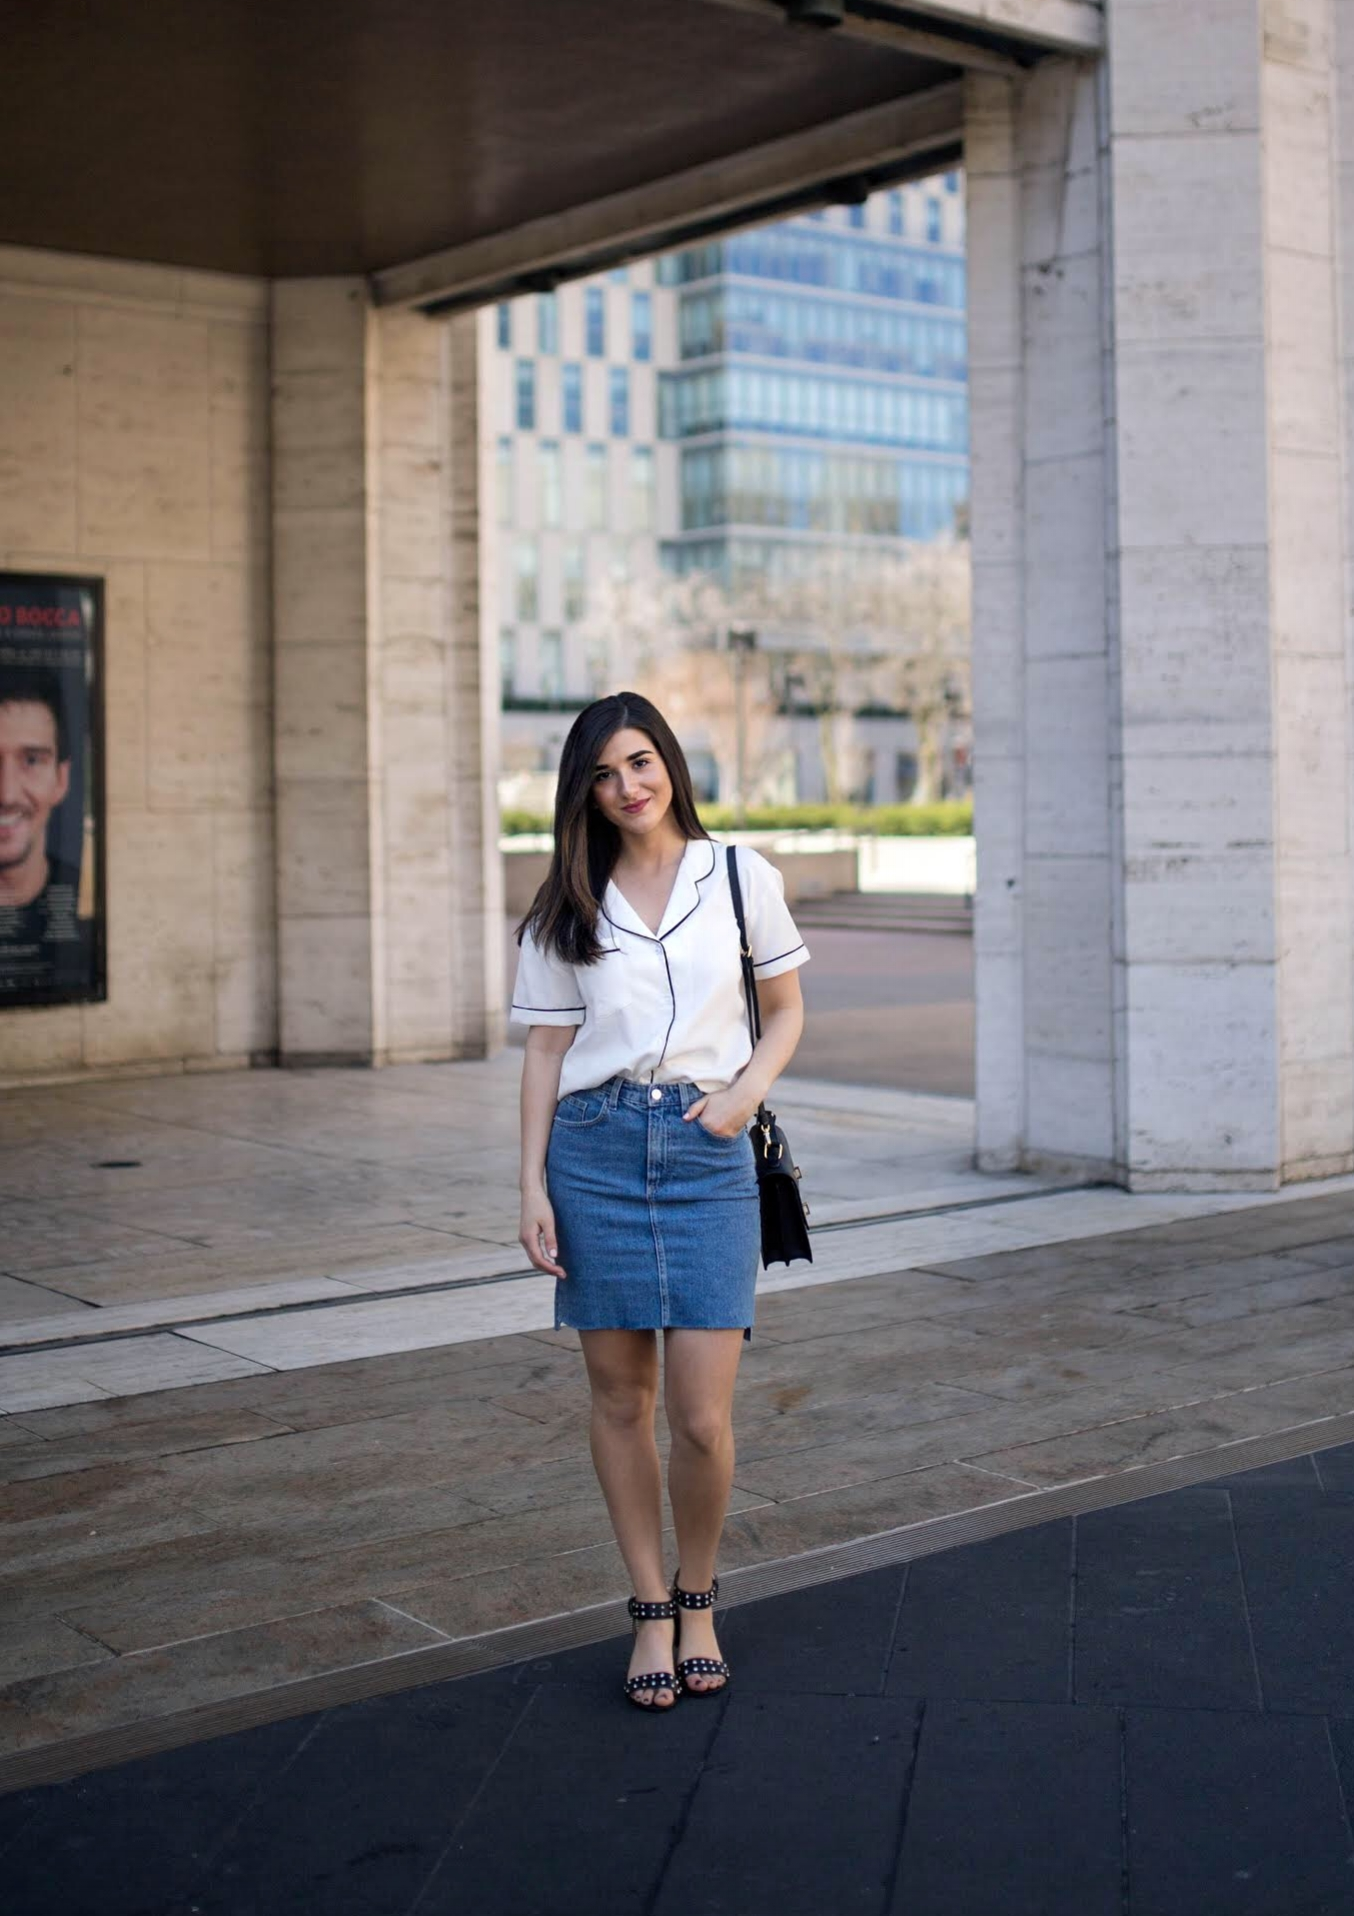 Pajama Top Denim Skirt 4 Reasons to Think Twice Before Signing a Contract Esther Santer Fashion Blog NYC Street Style Blogger Outfit OOTD Trendy Collar Light Jean Studded Sandals Shoes Summer Look Inspo Hair Photoshoot Model Women Girl Purse Shopping.jpg